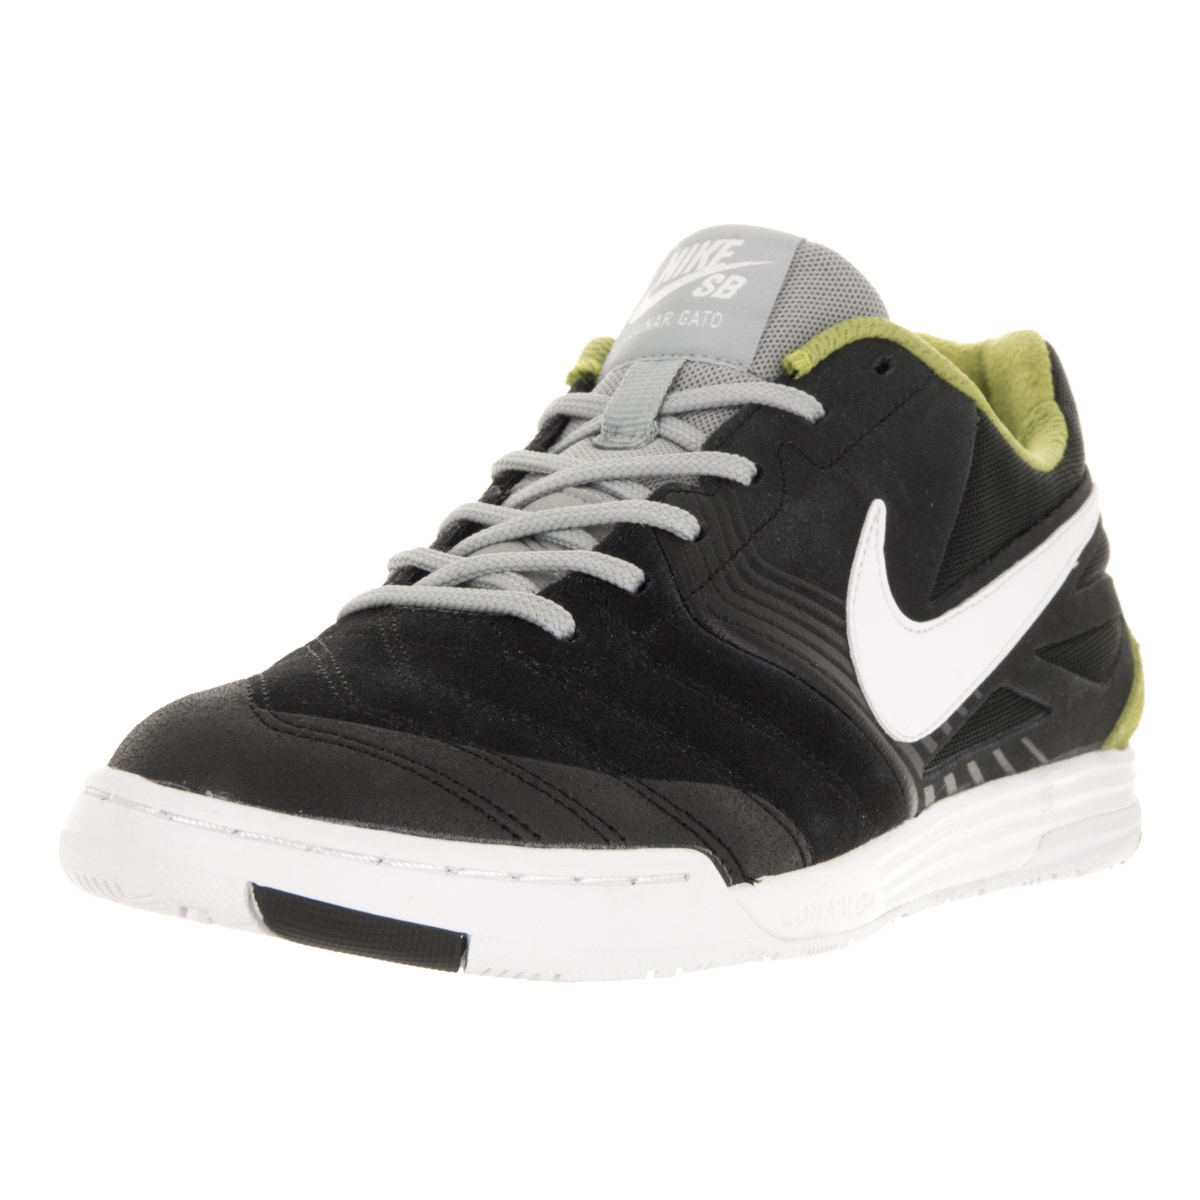 premium selection 670f1 7d213 ... australia shop nike mens sb lunar gato black white venom green bs gry  skate shoe free